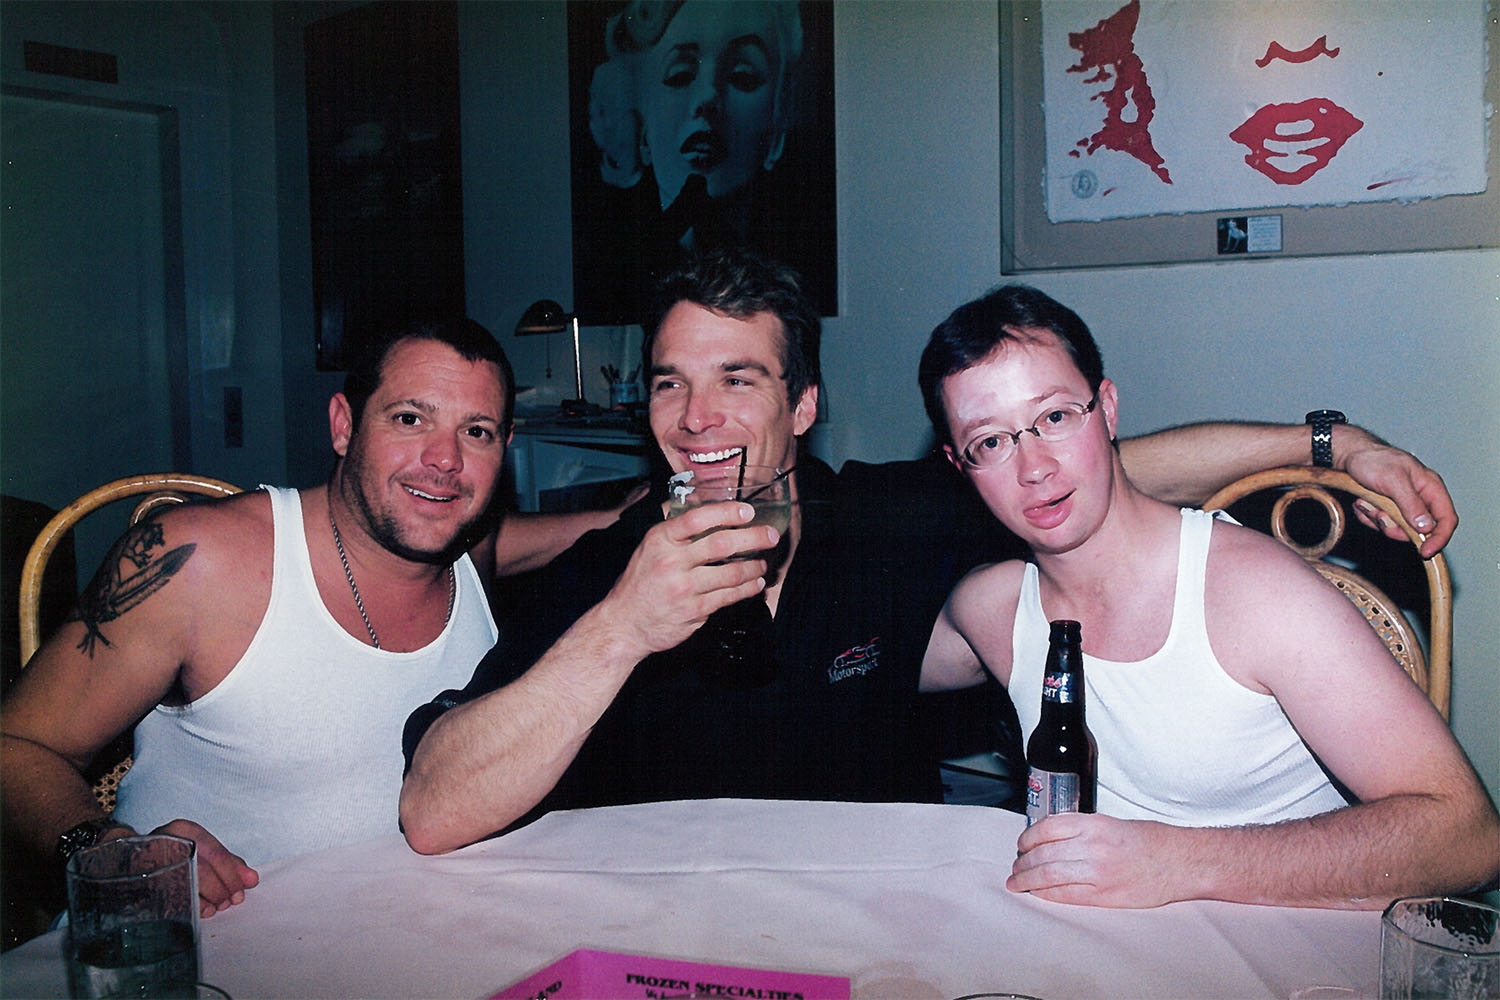 Here is (left to right) Chad McQueen, John Clark Gable, and Brad Bowling having dinner at a restaurant in Malibu in 1997. A friend told me I would someday regret making a funny face for this picture. I now see what he was talking about.  Property Brad Bowling